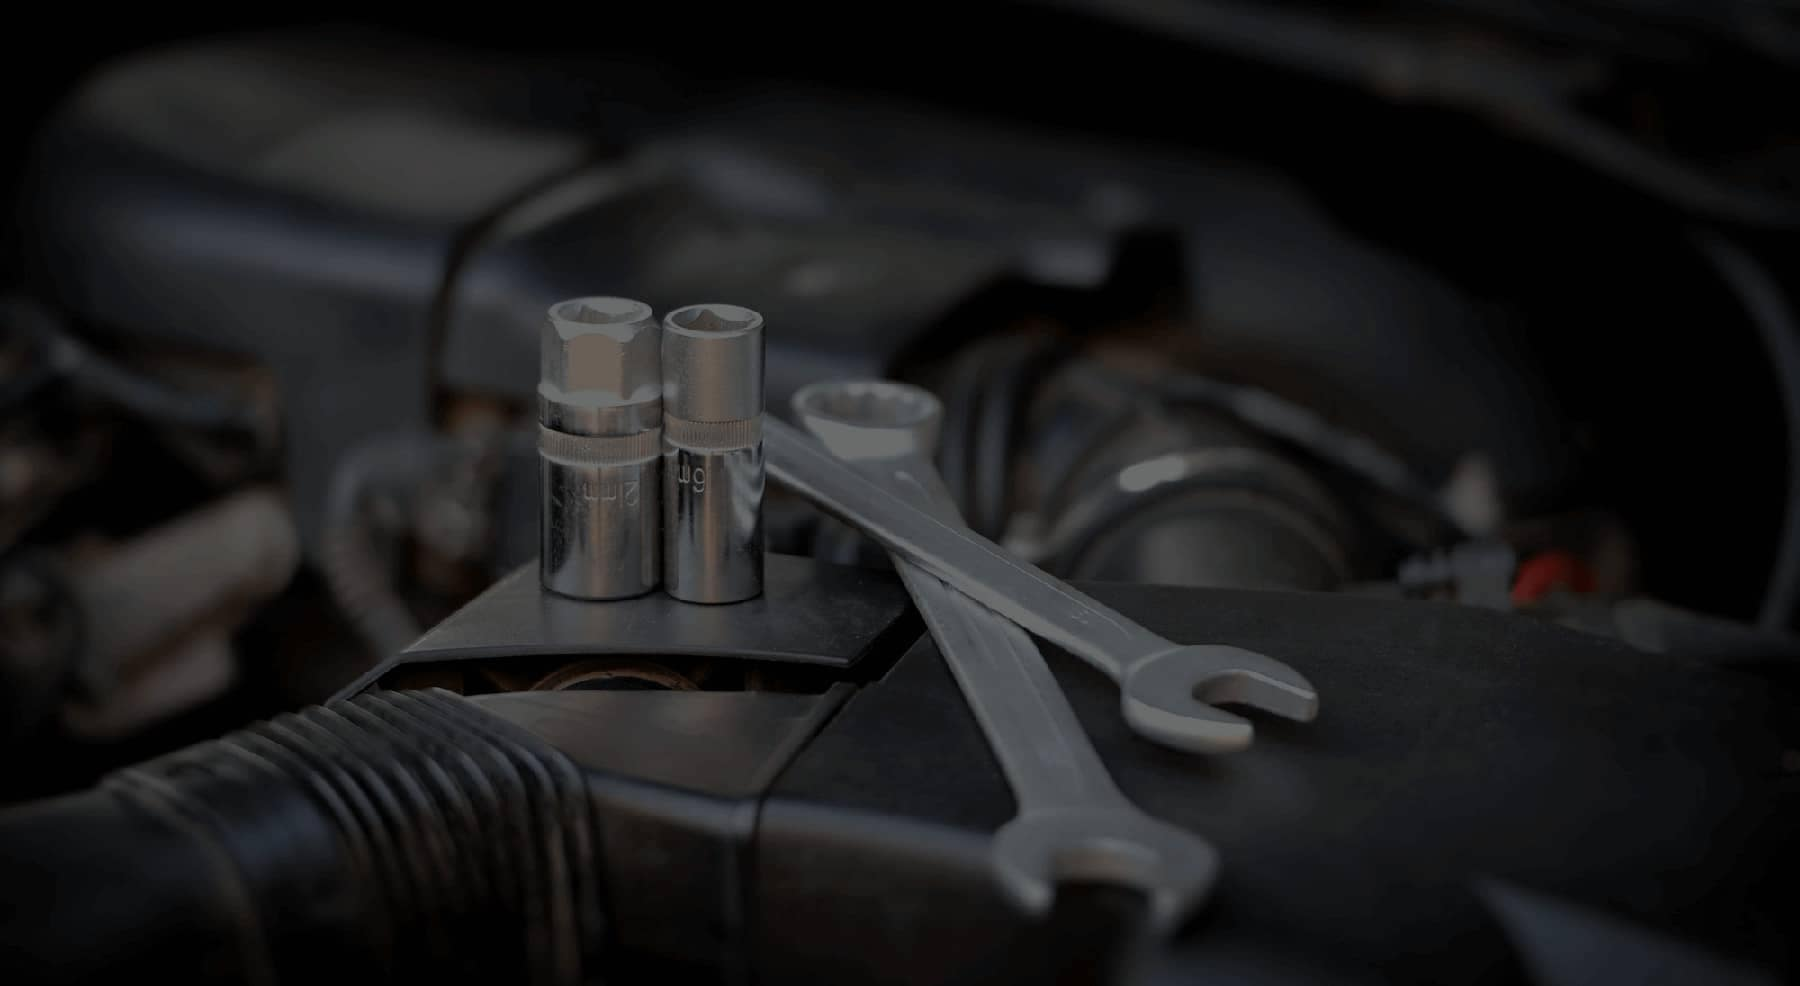 Tools on car engine